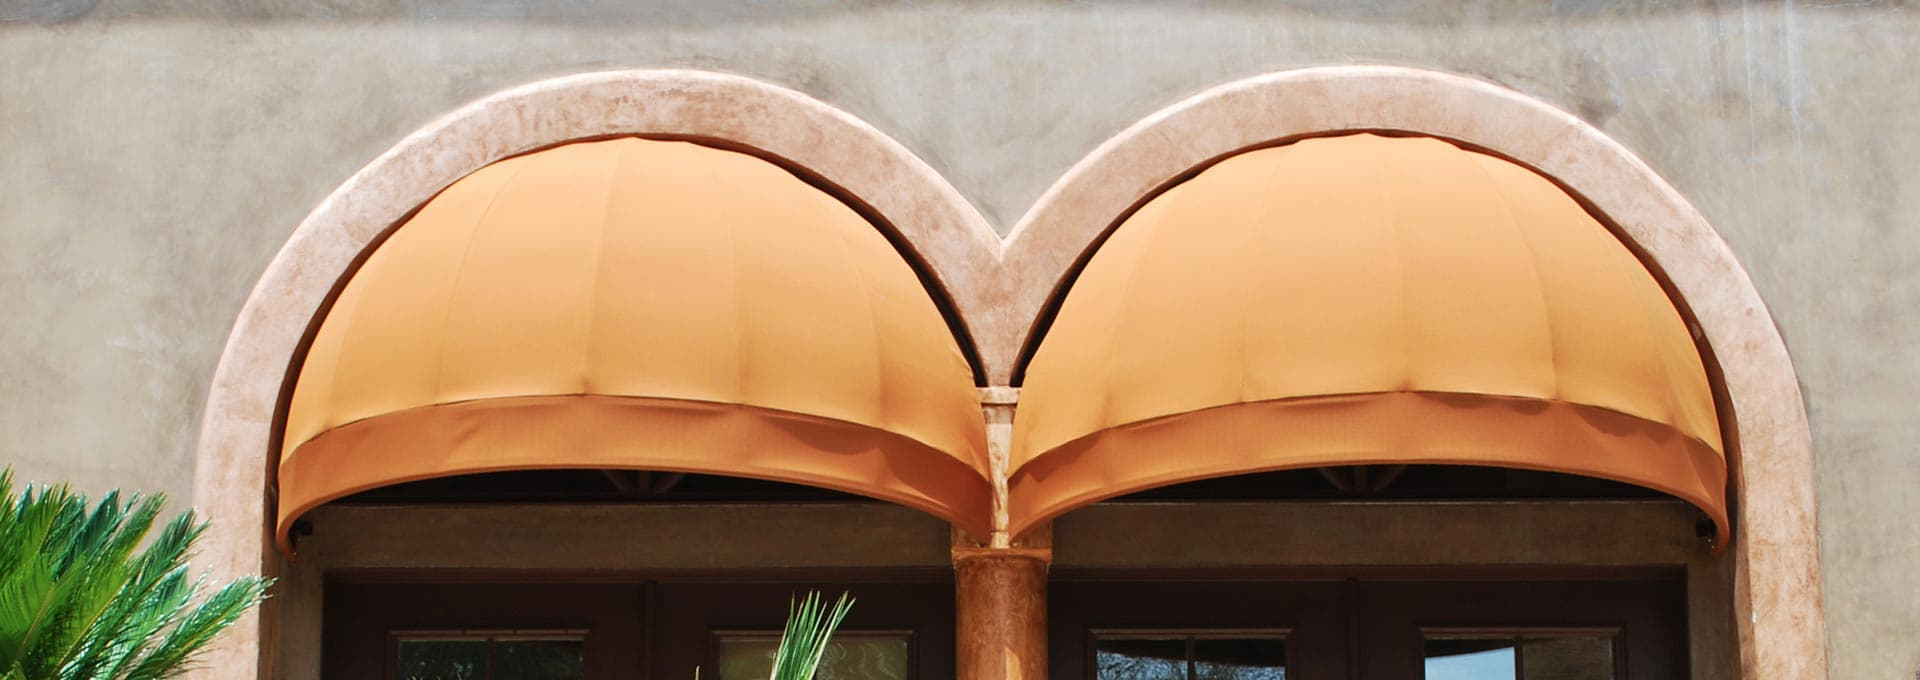 Stationary Fabric Dome Awnings and Dome Canopies